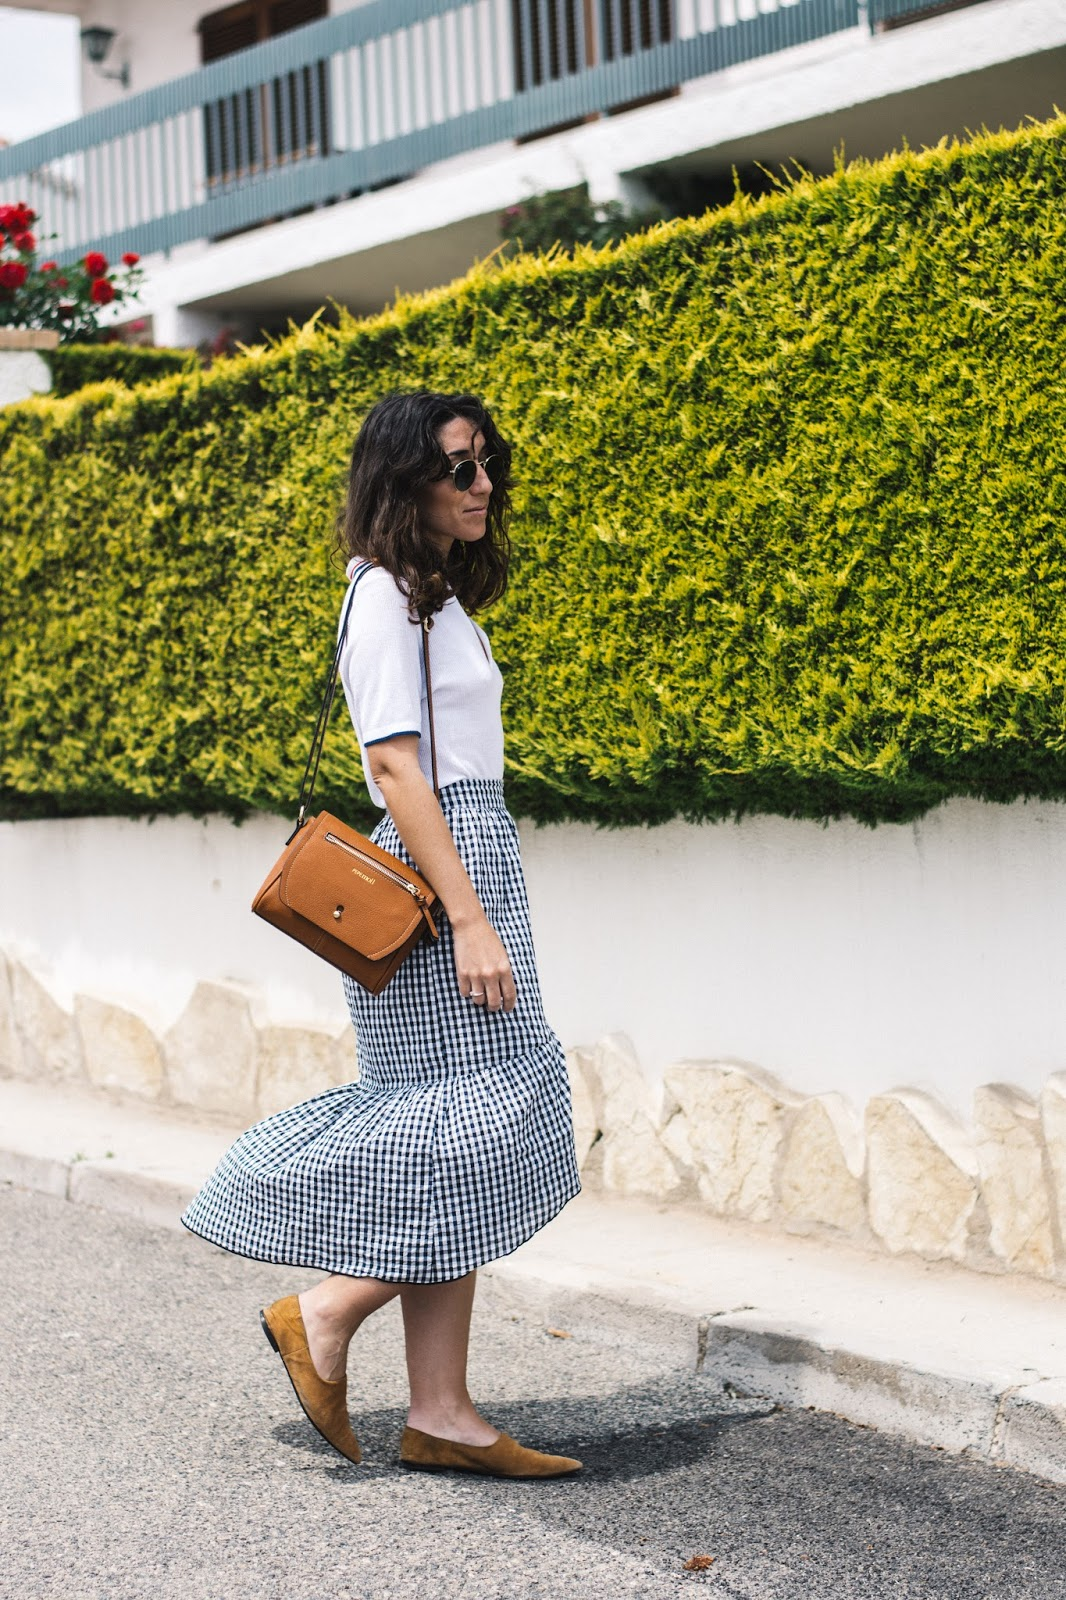 gingham_print_asos_skirt_pepe_moll_bag_hm_slip_on_hm_tennis_top-22